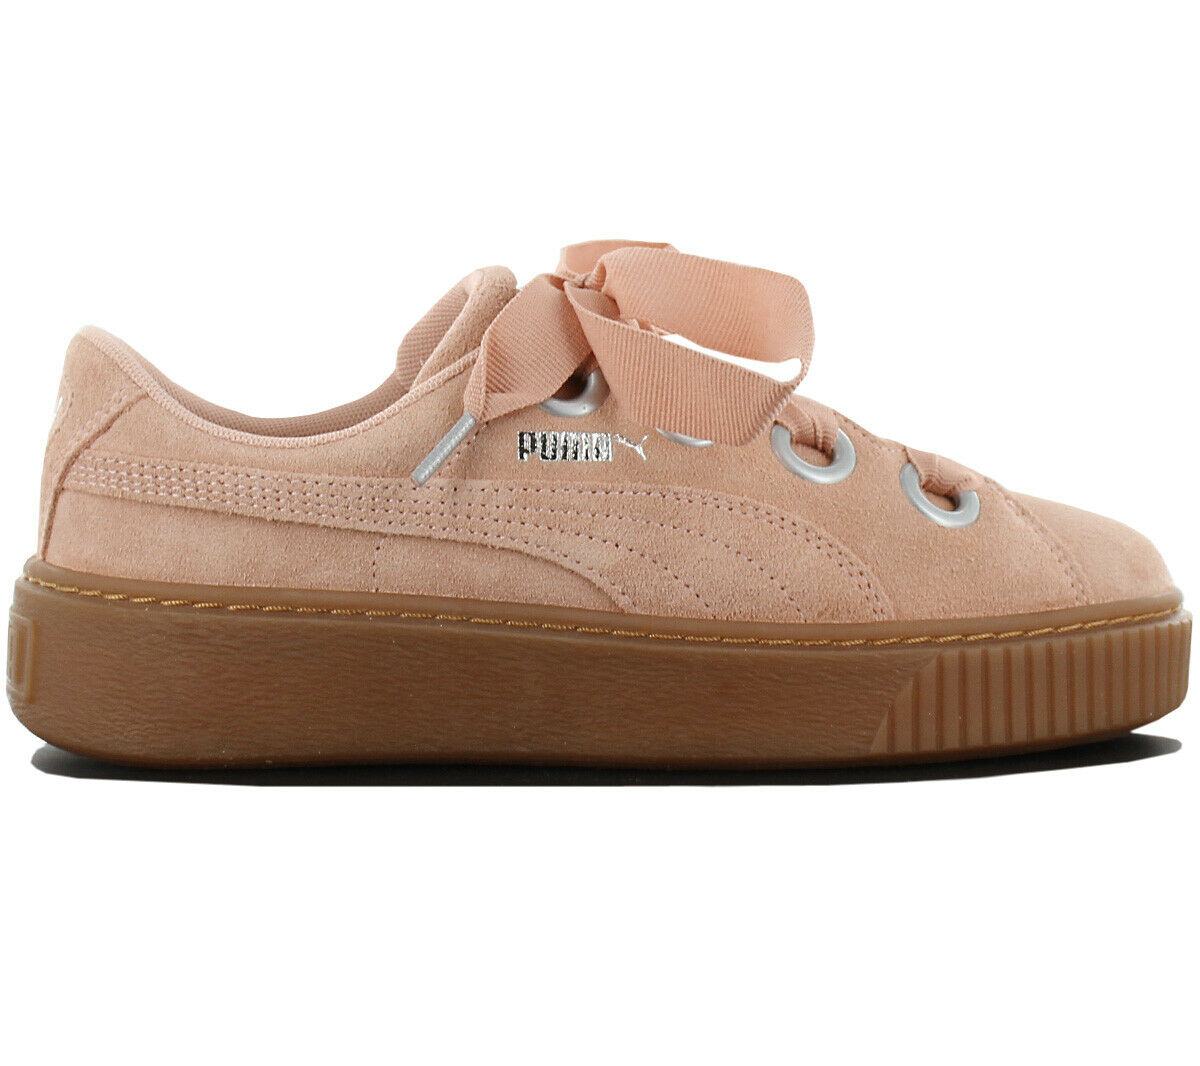 Puma Platform Kiss Suede Women's Sneakers 366461-03 Leather shoes Gym shoes New